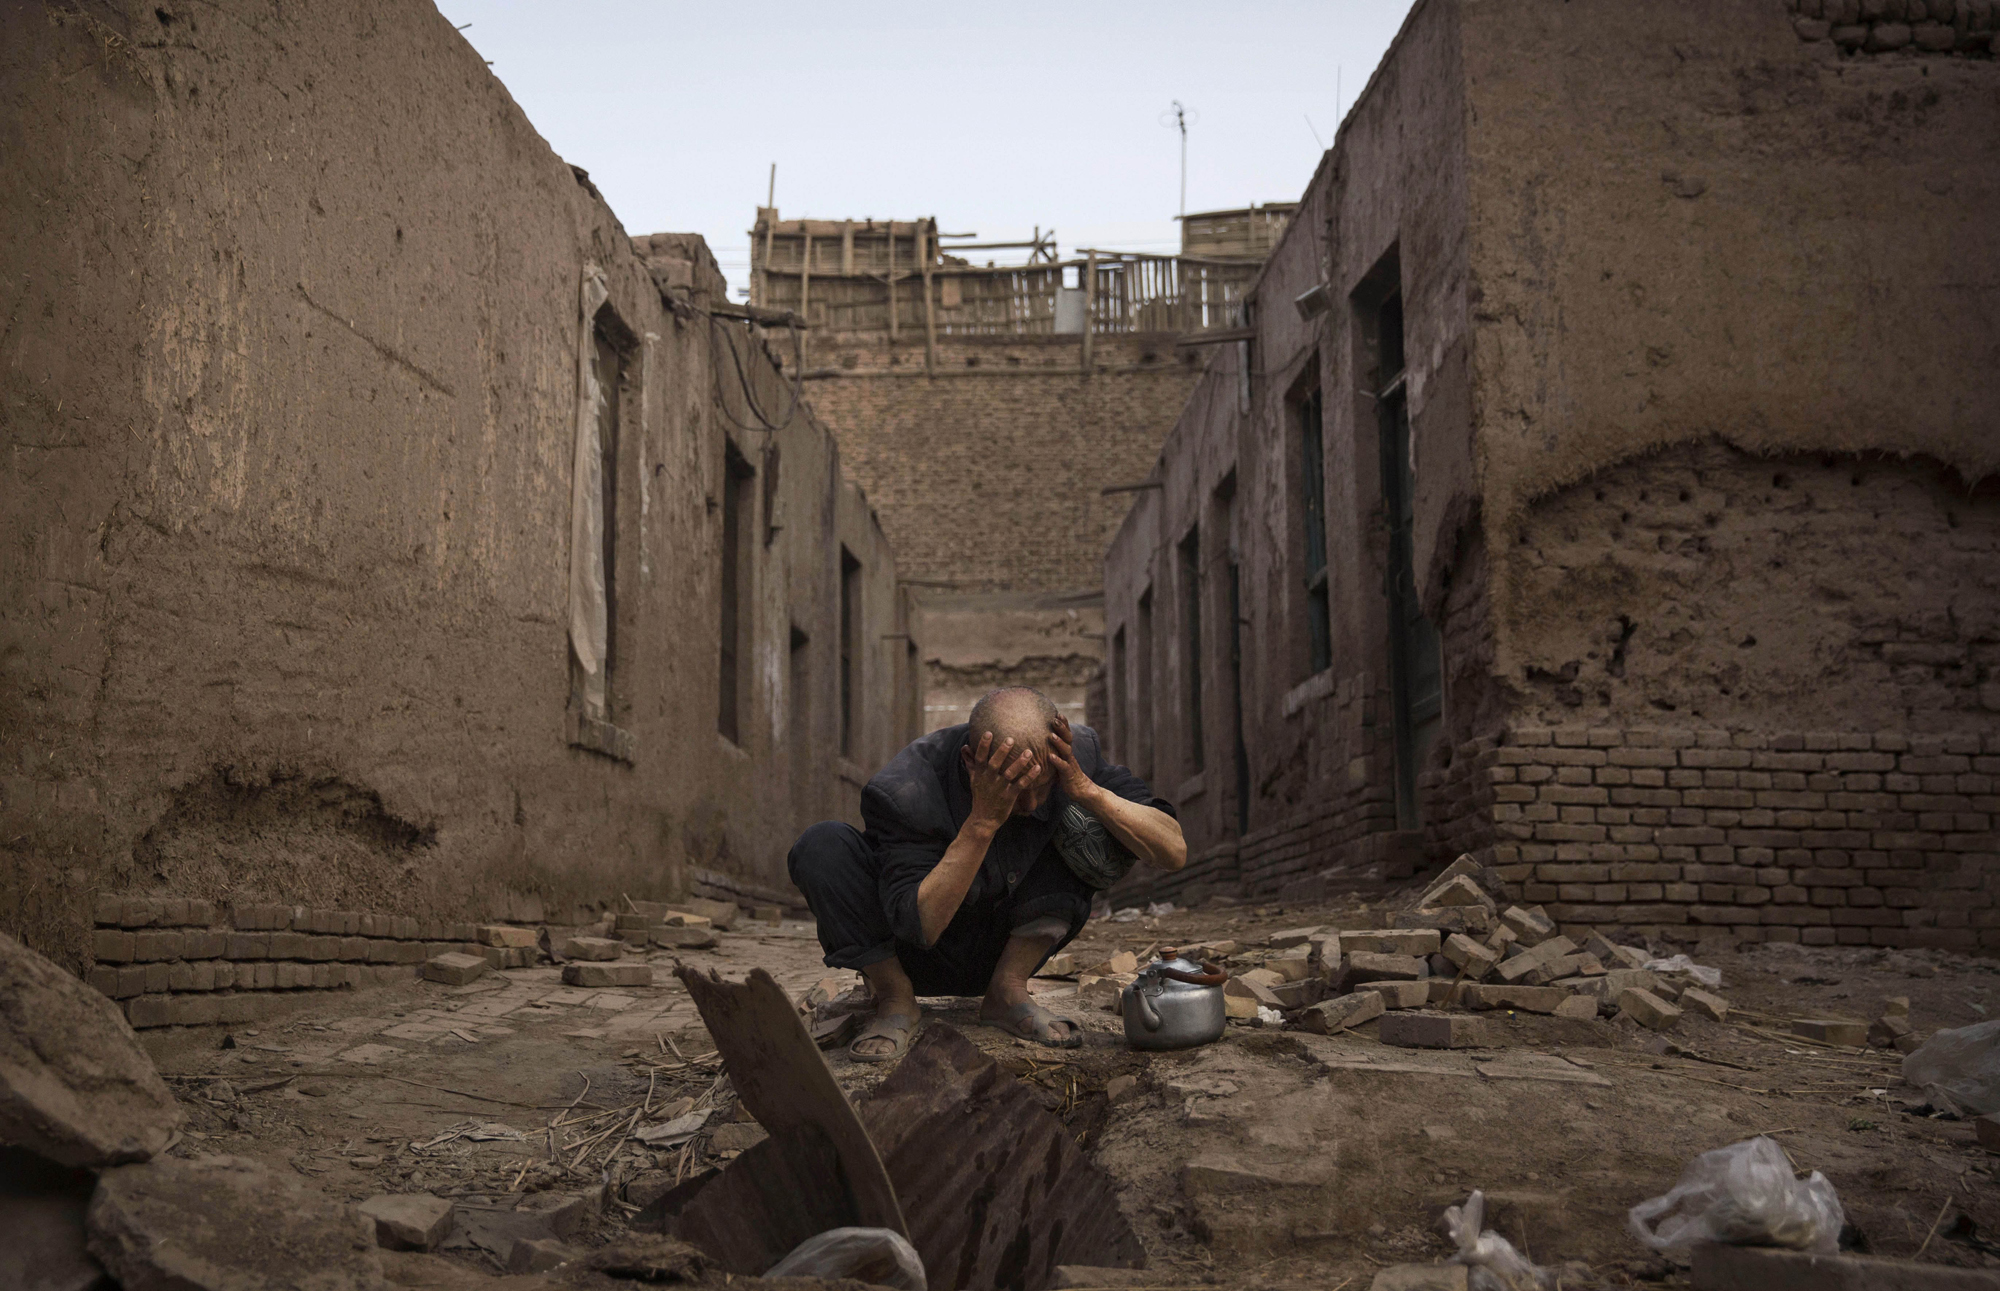 A Uighur man washes himself before prayers next to abandoned traditional houses set to be demolished by authorities to make way for new homes on July 27, 2014 in old Kashgar.